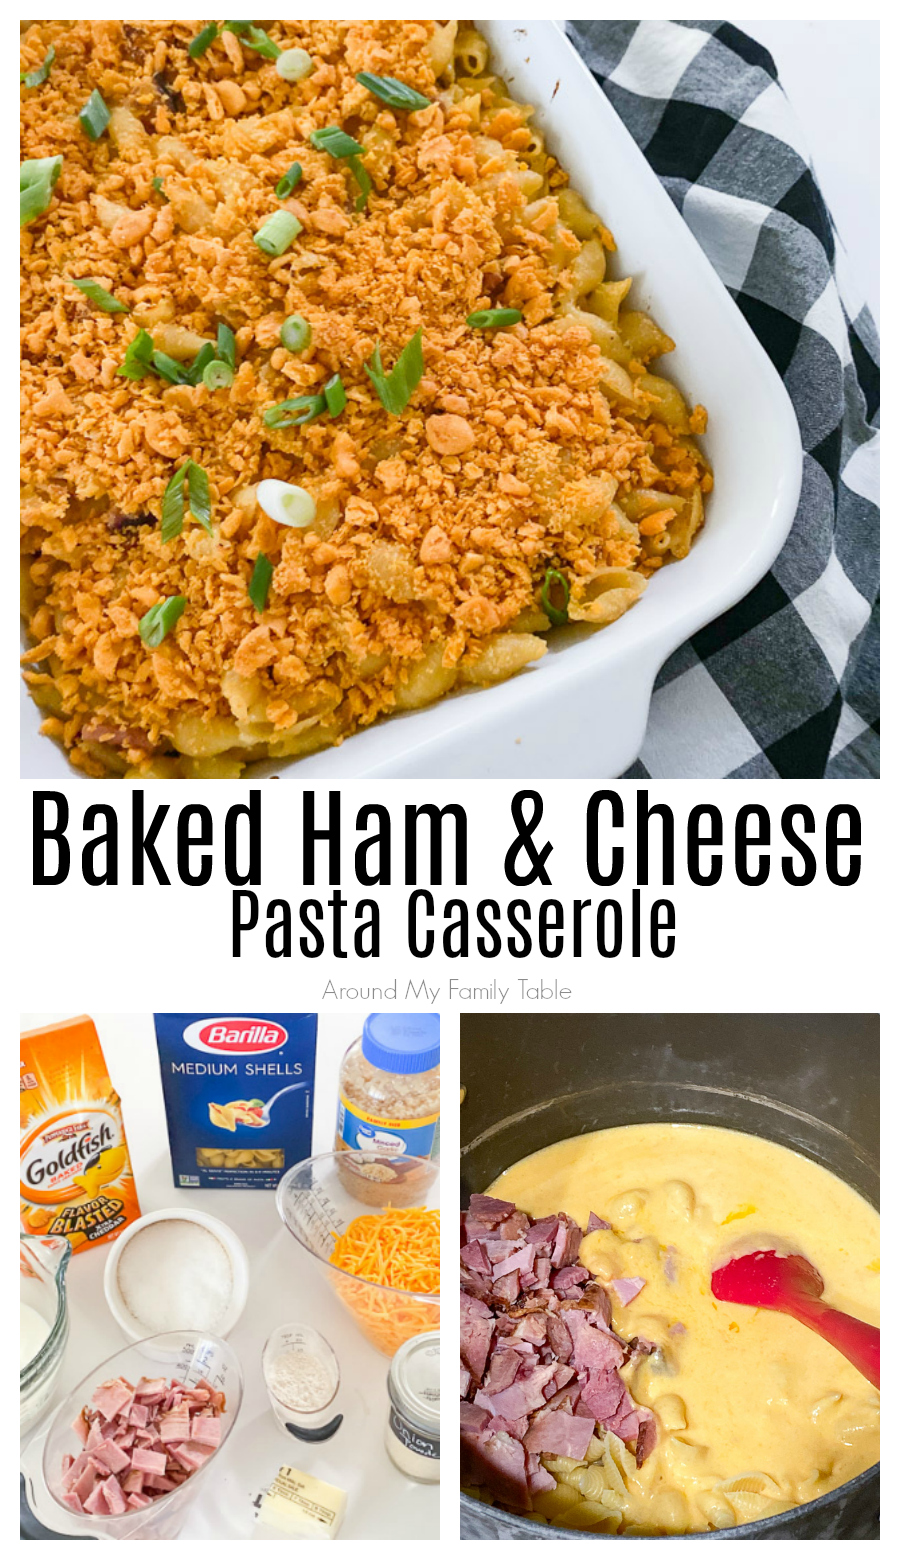 Got leftover ham?  This Baked Ham & Cheese Pasta Casserole will have your family begging for seconds! via @slingmama